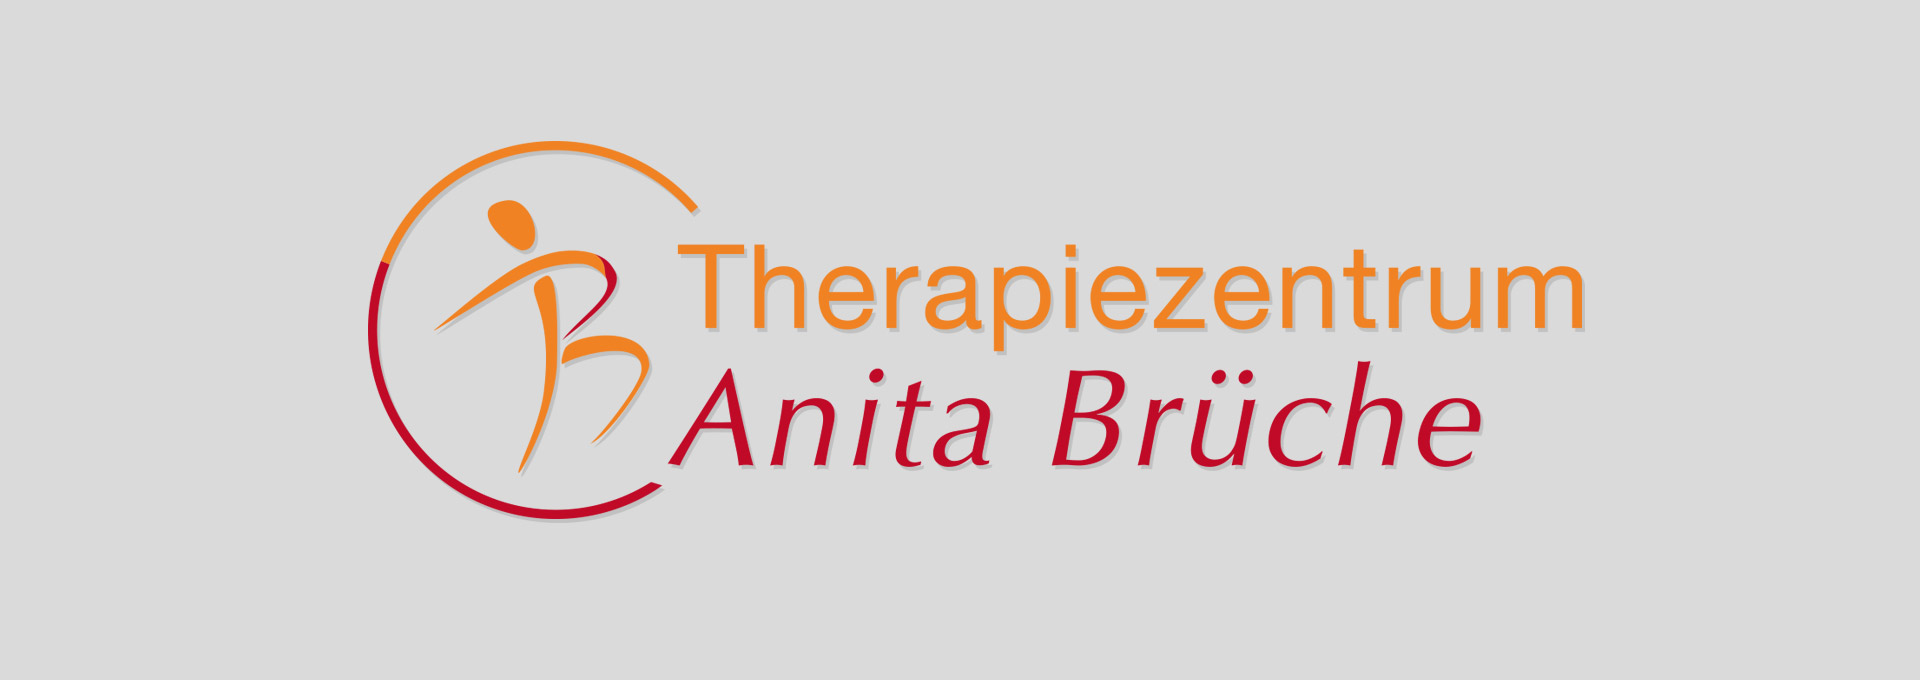 1920x680 Therapiezentrum Logo Physiotherapie